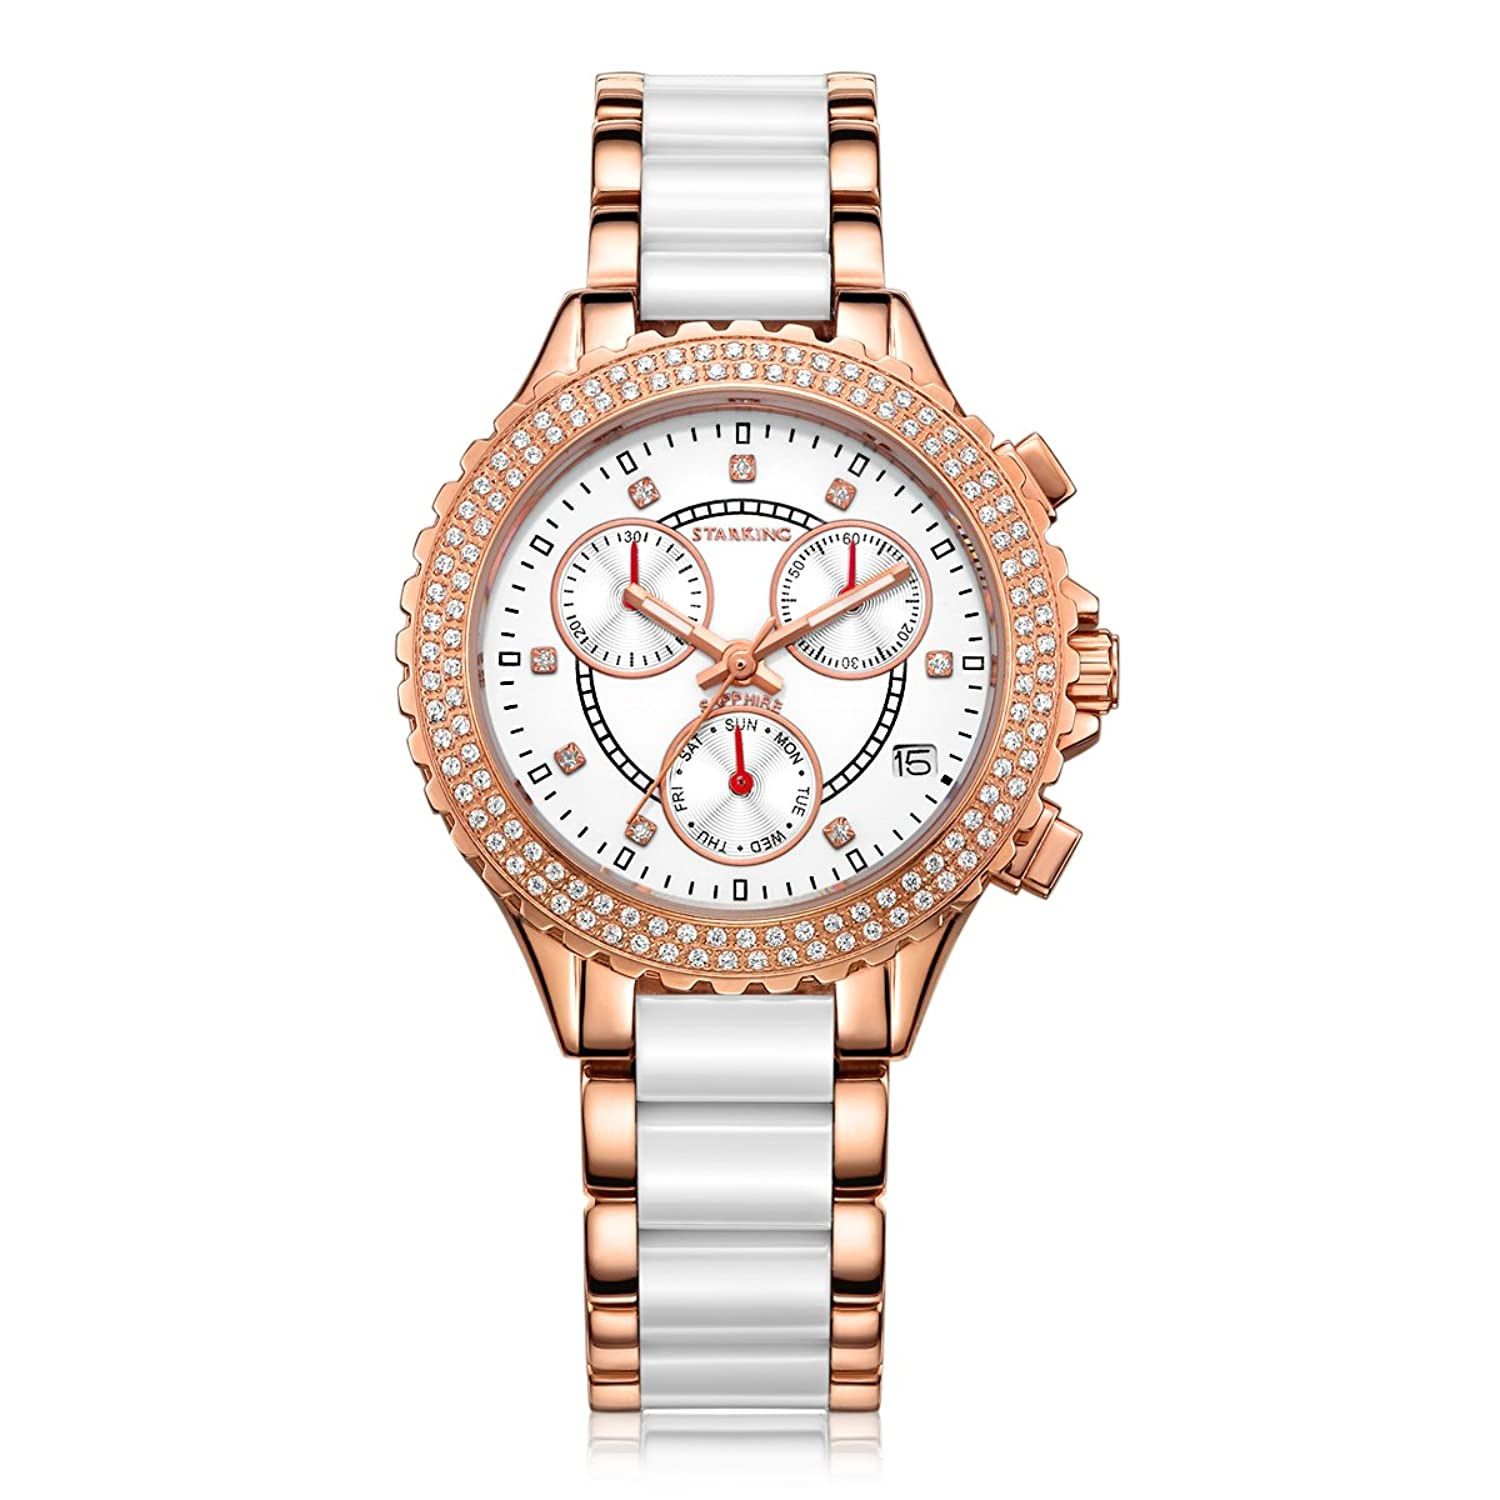 Starking Damen Keramik Analog Display Swiss Quartz Rose Gold Watch (Modell: bl0630rc31)